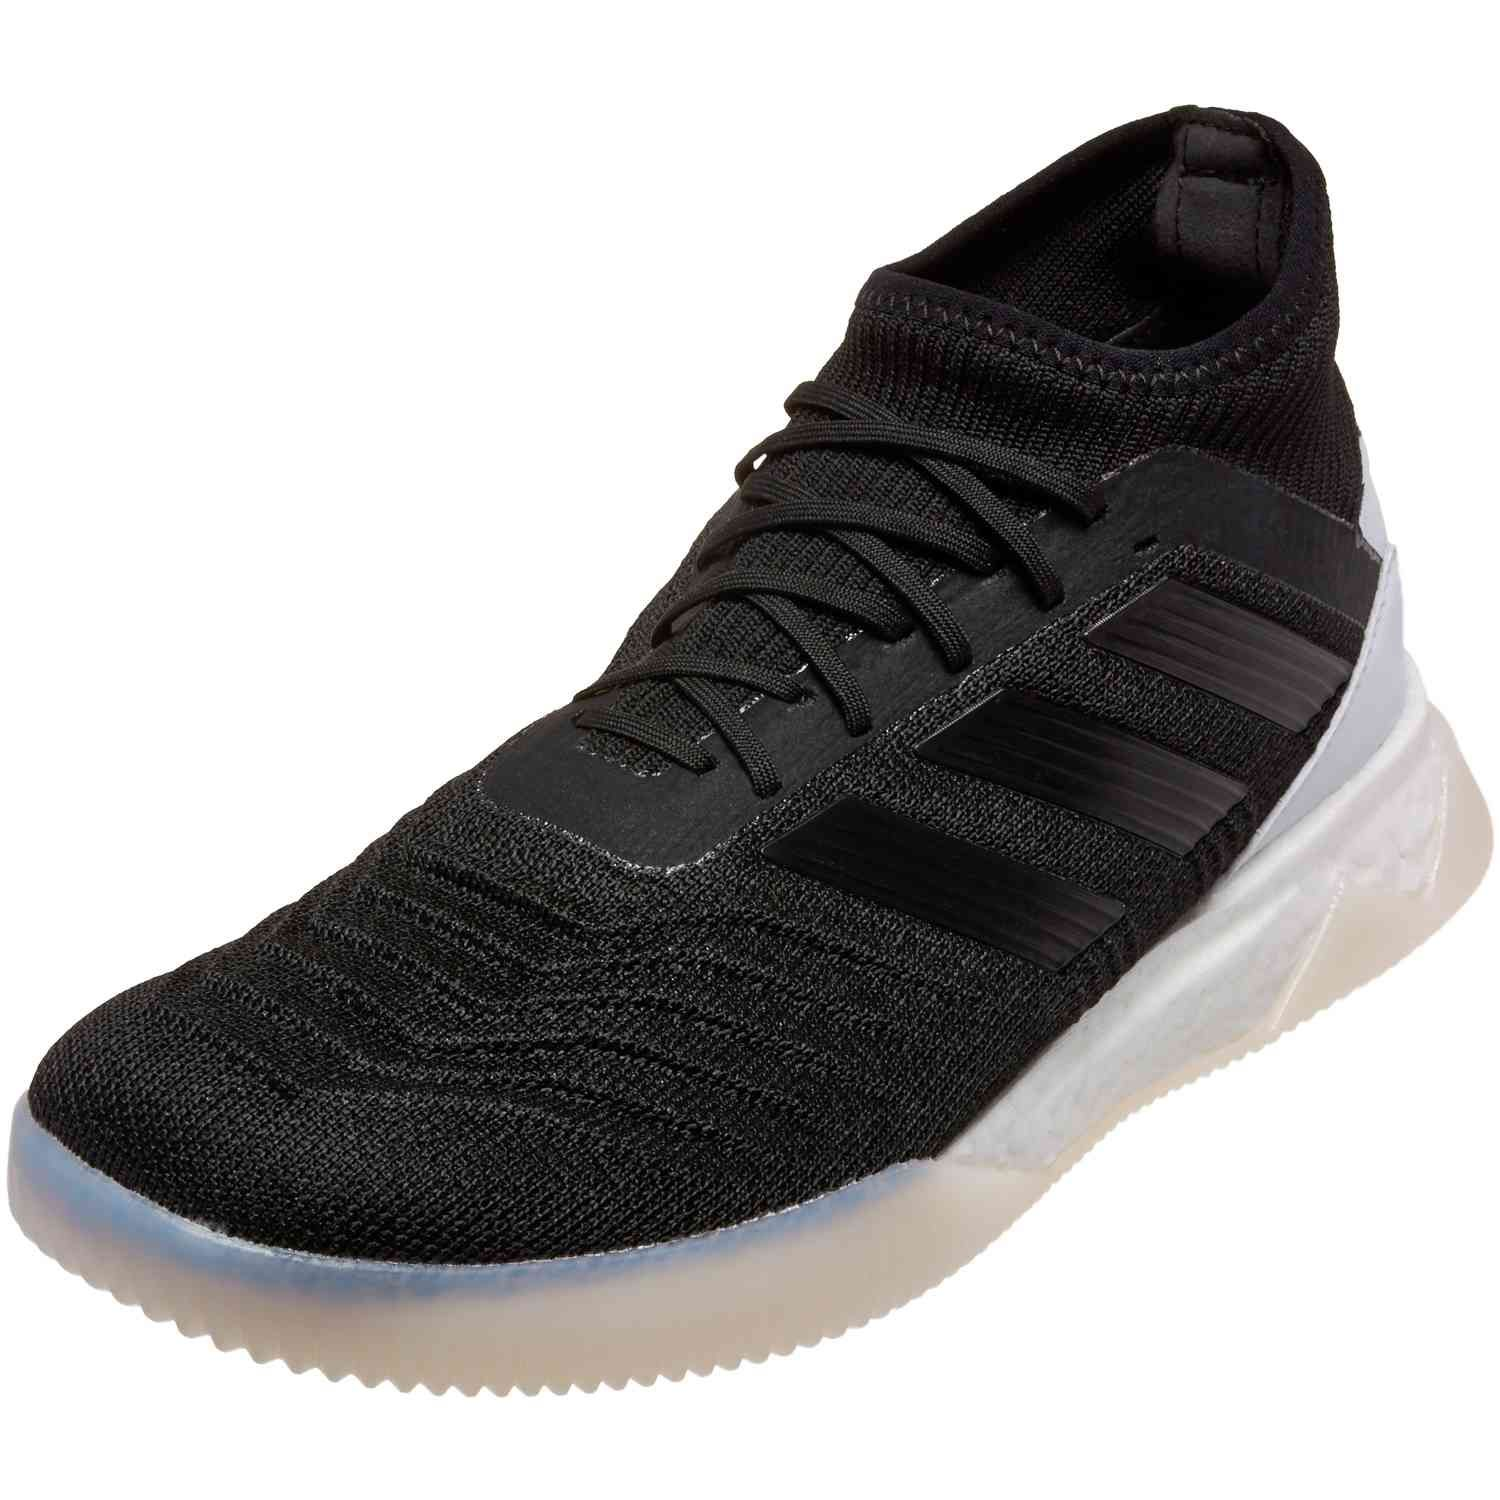 7af8d6fce Get the adidas Predator 19.1 Trainers in black and white from soccerpro.com